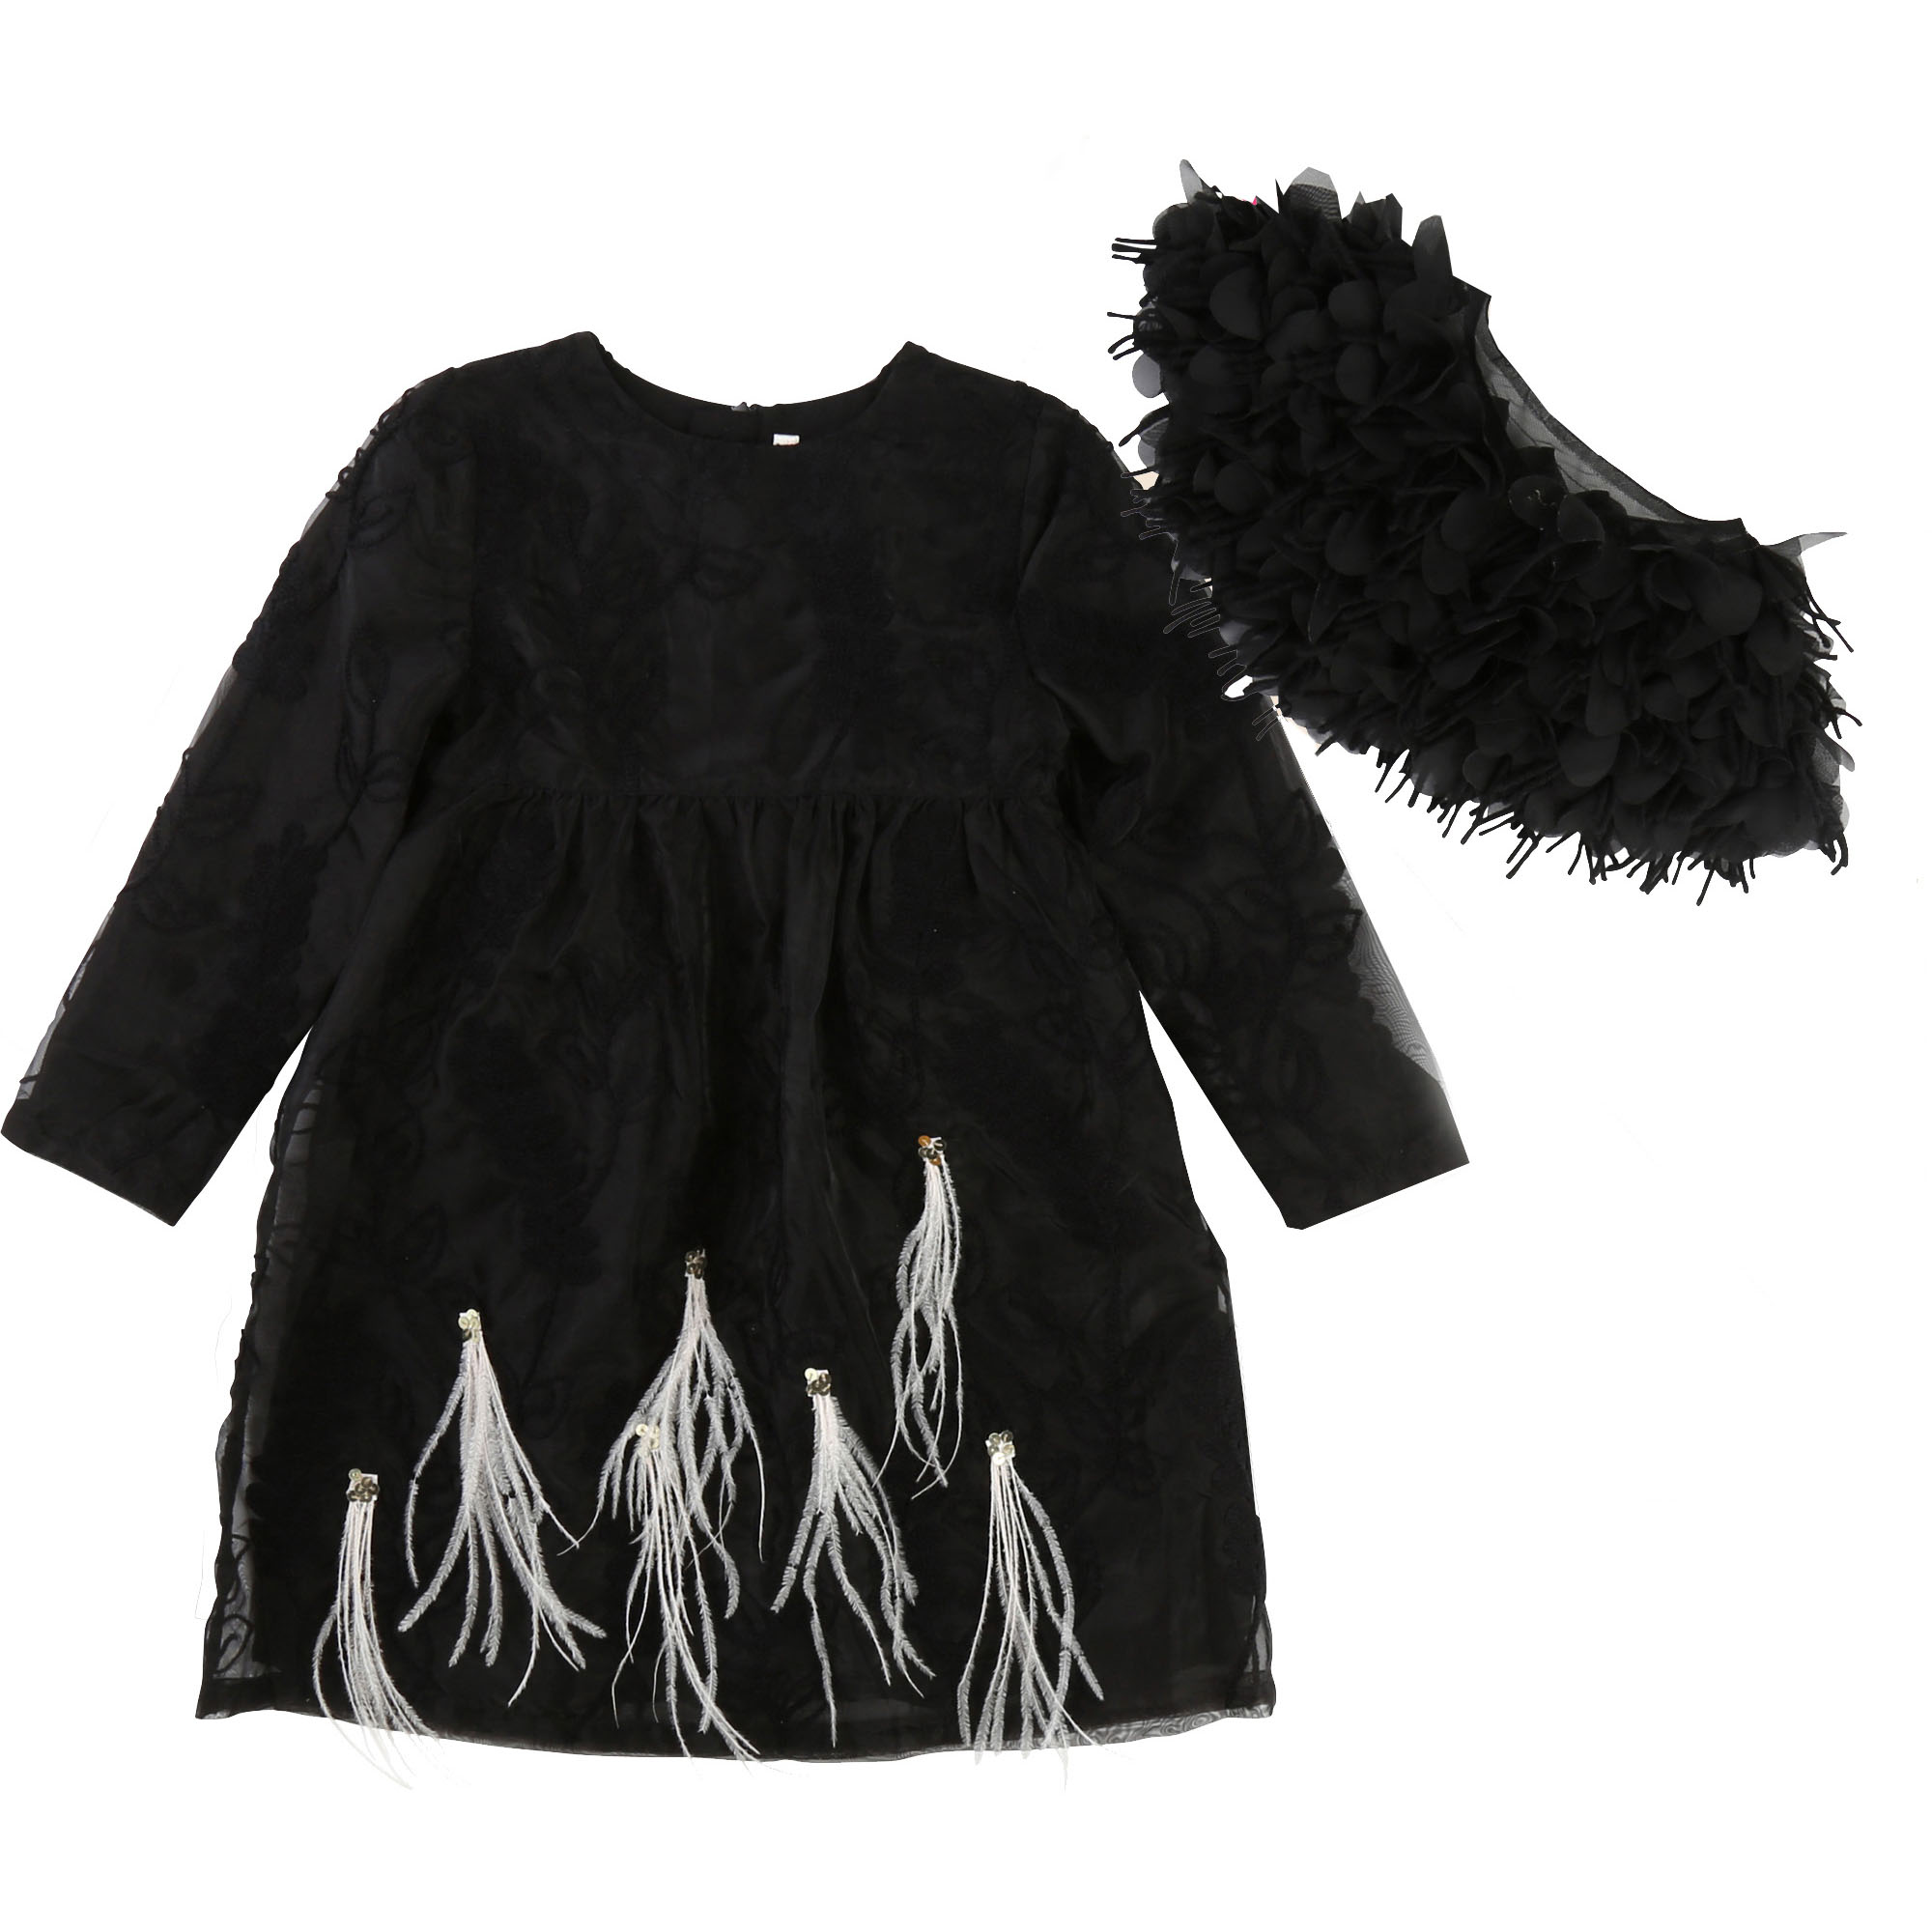 Black feather dress BILLIEBLUSH for GIRL